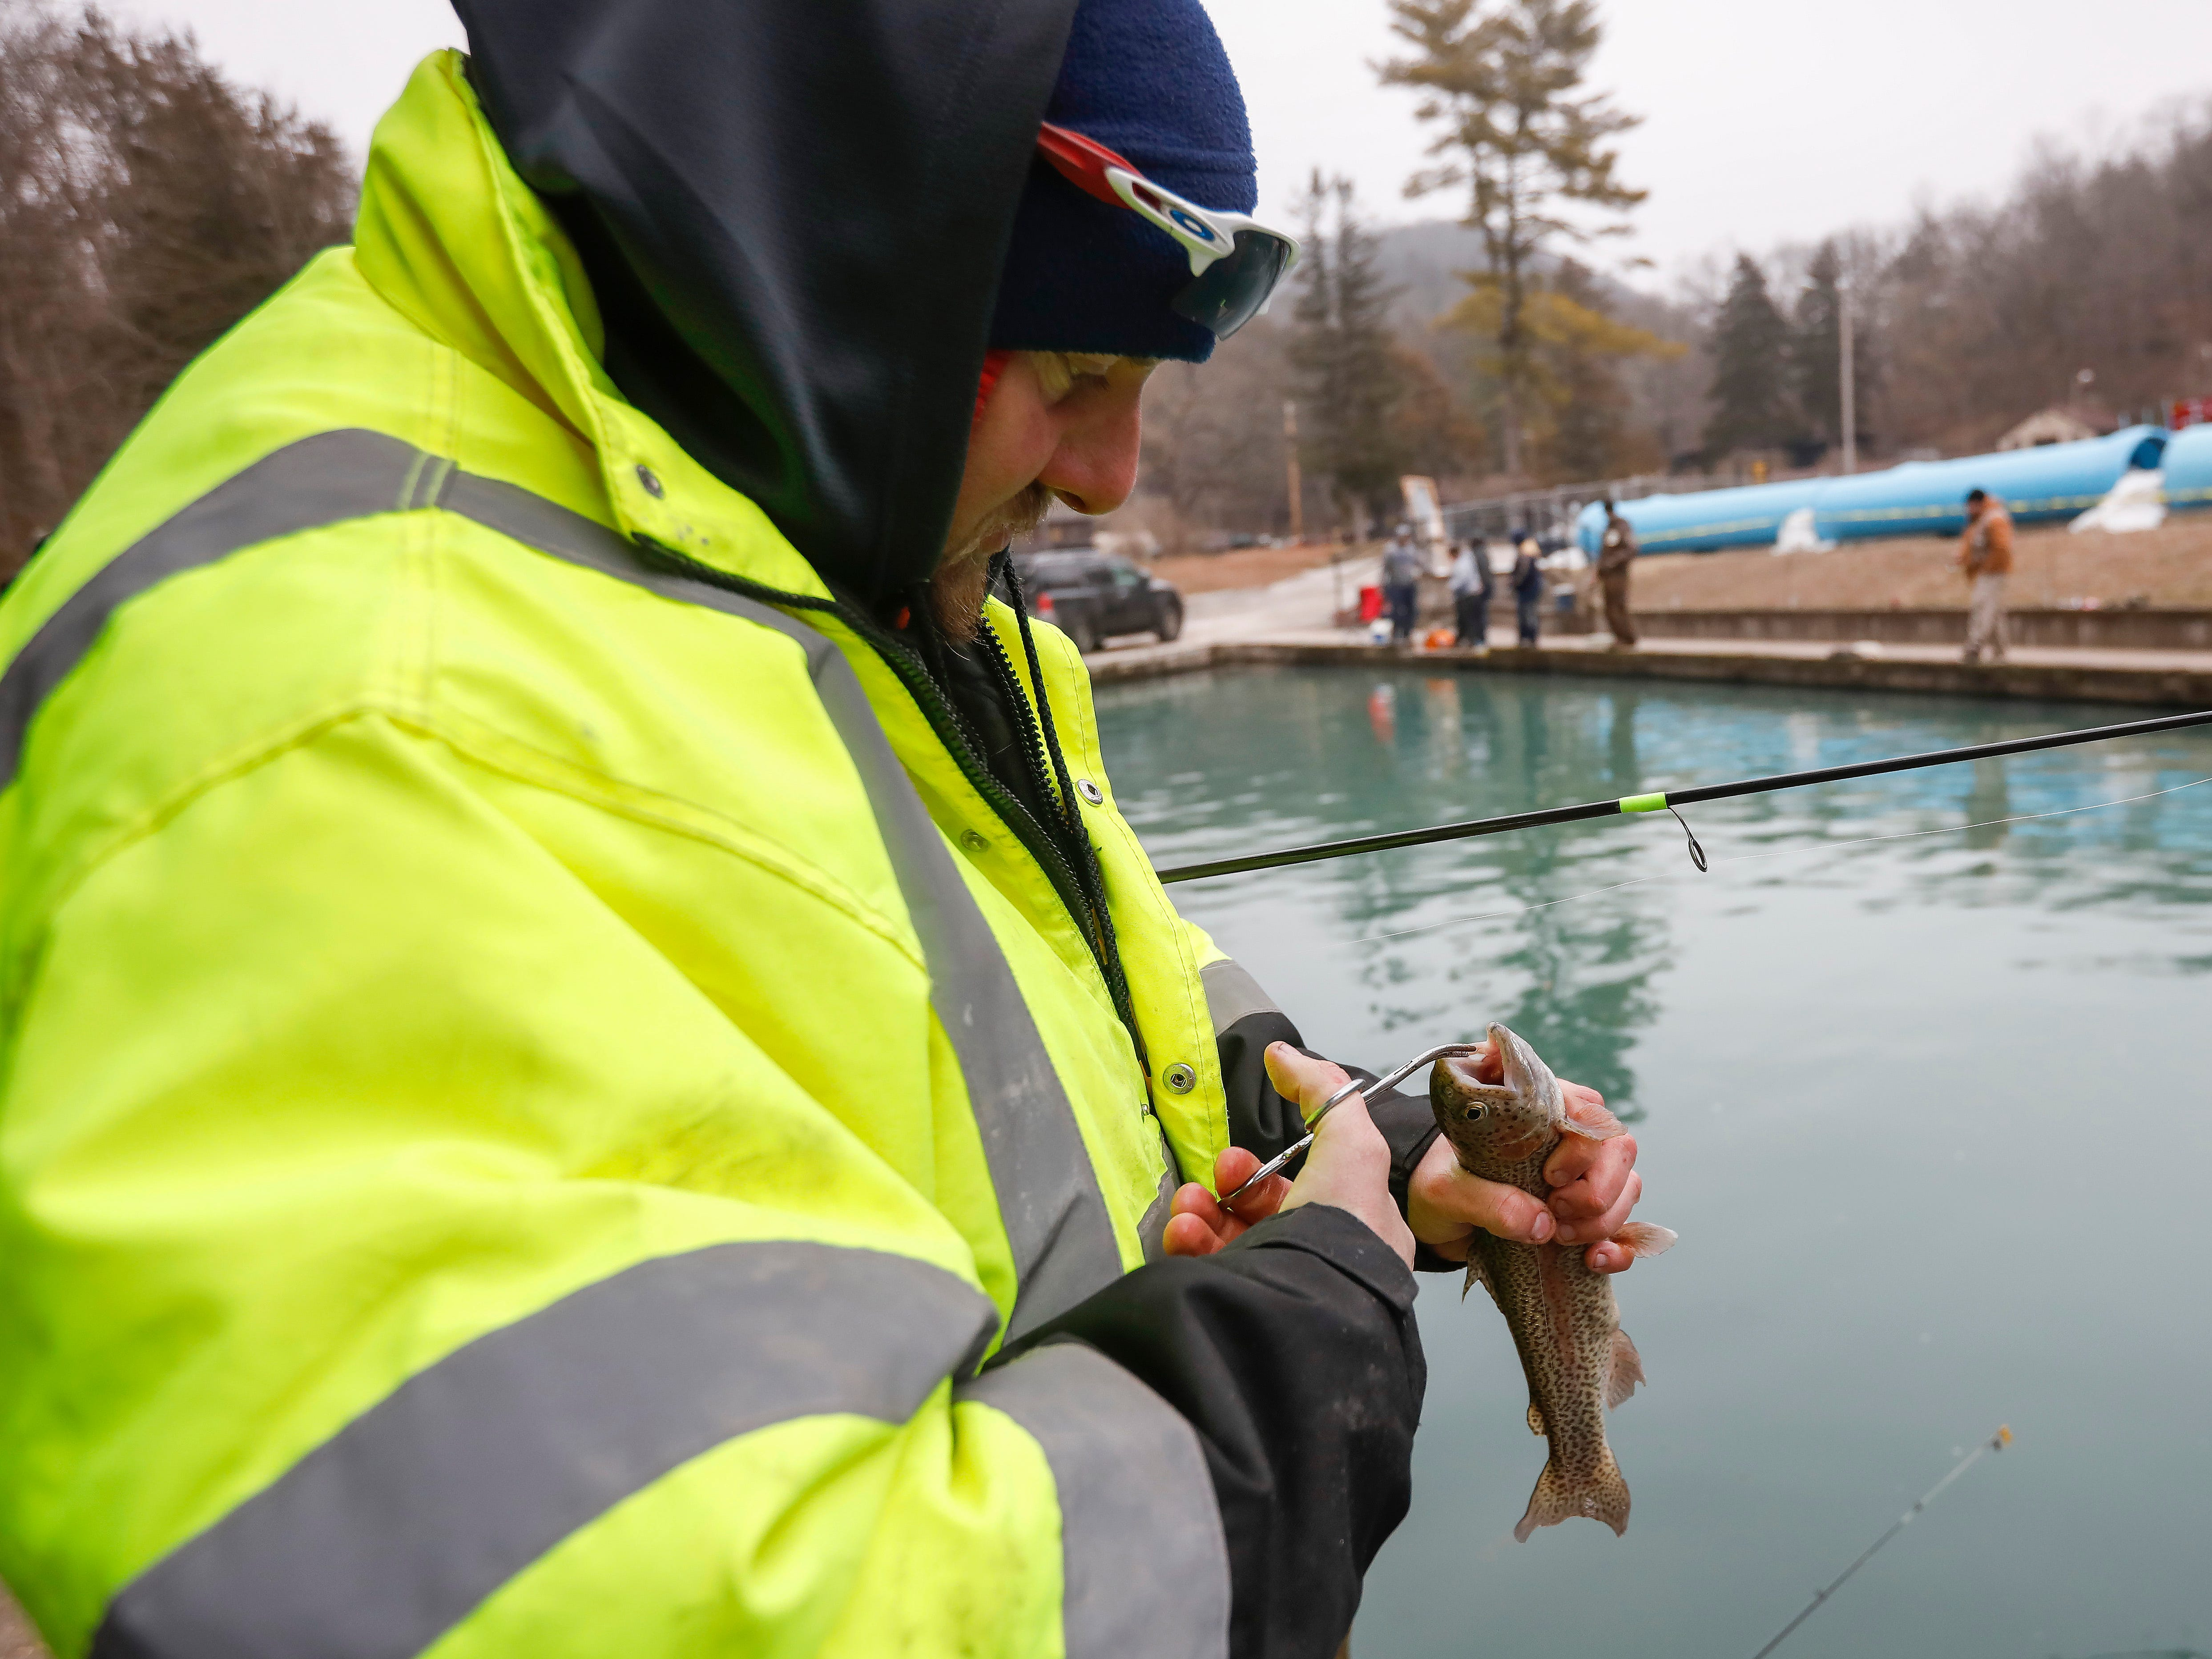 Stephen Davis unhooks the trout he caught during opening day of trout season at Roaring River State Park on Friday, Mar. 1, 2019.